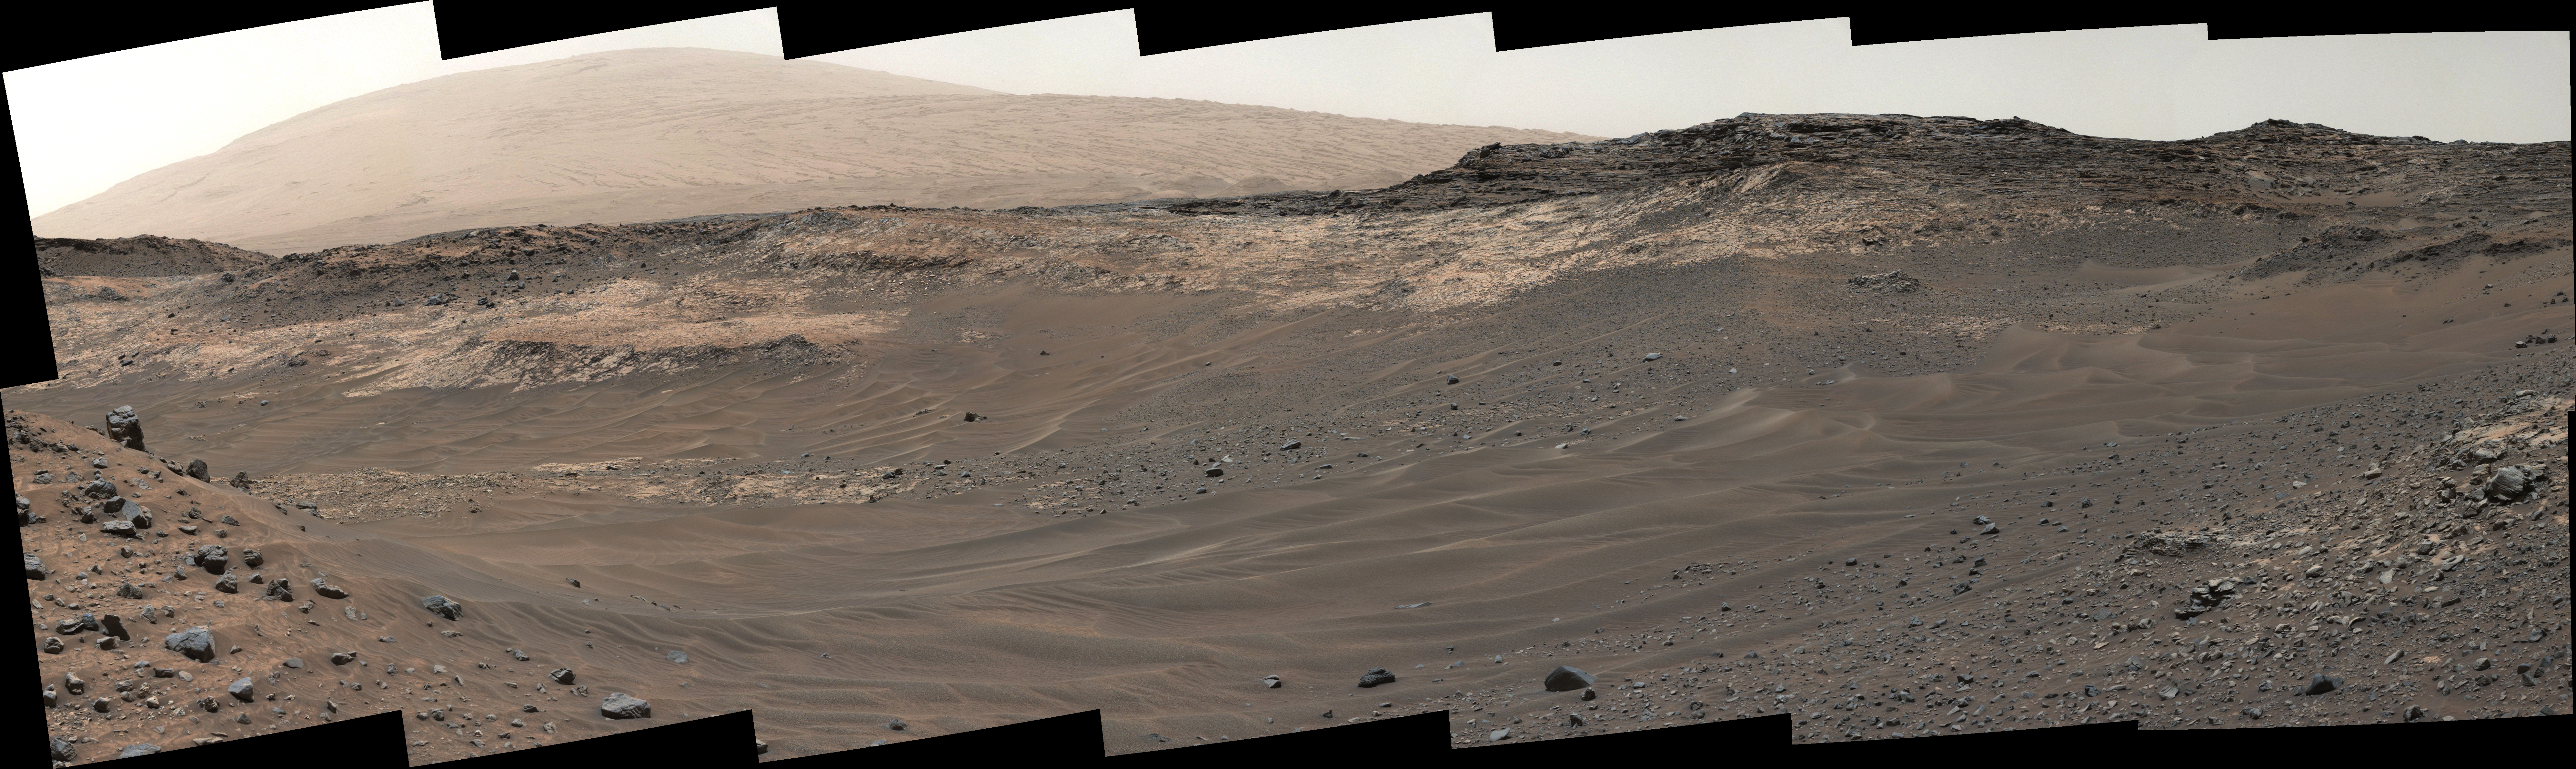 This May 10, 2015, view from Curiosity's Mastcam shows terrain judged difficult for traversing between the rover and an outcrop in the middle distance where a pale rock unit meets a darker rock unit above it. The rover team decided not to approach this outcrop and identified an alternative.